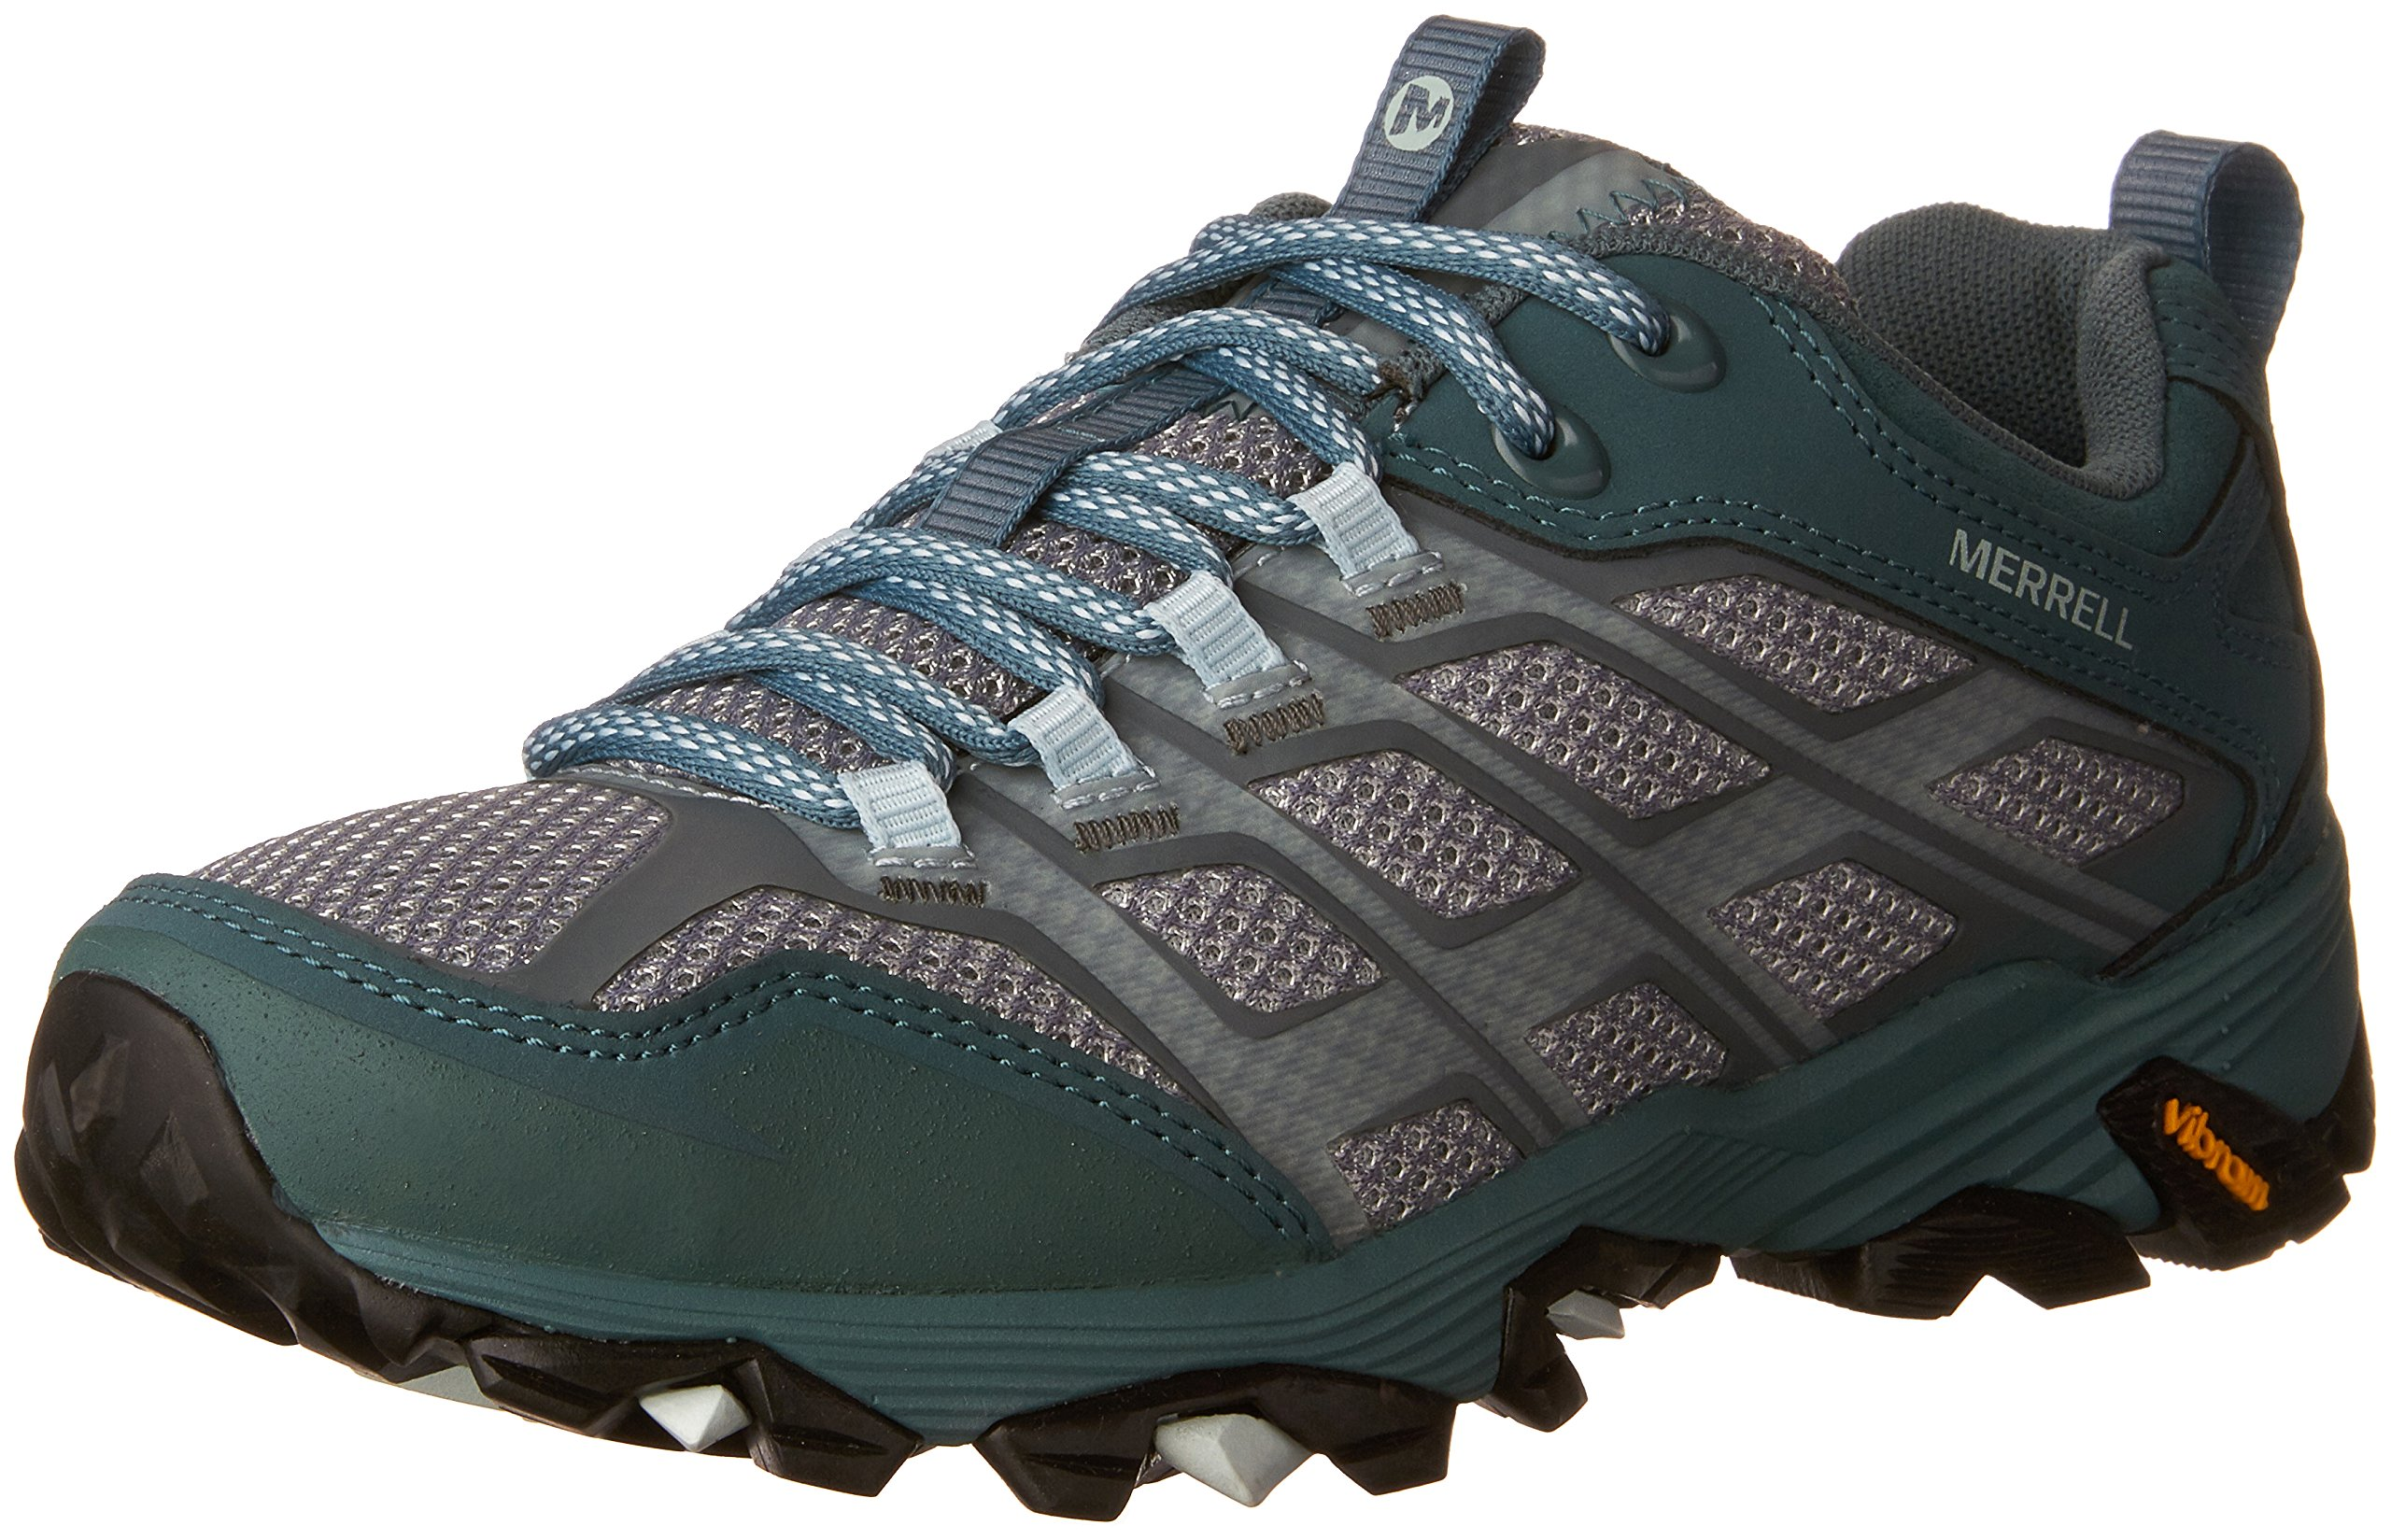 Merrell Women Sea Pine Moab Fst Hiking Shoe, 9 B(M) US